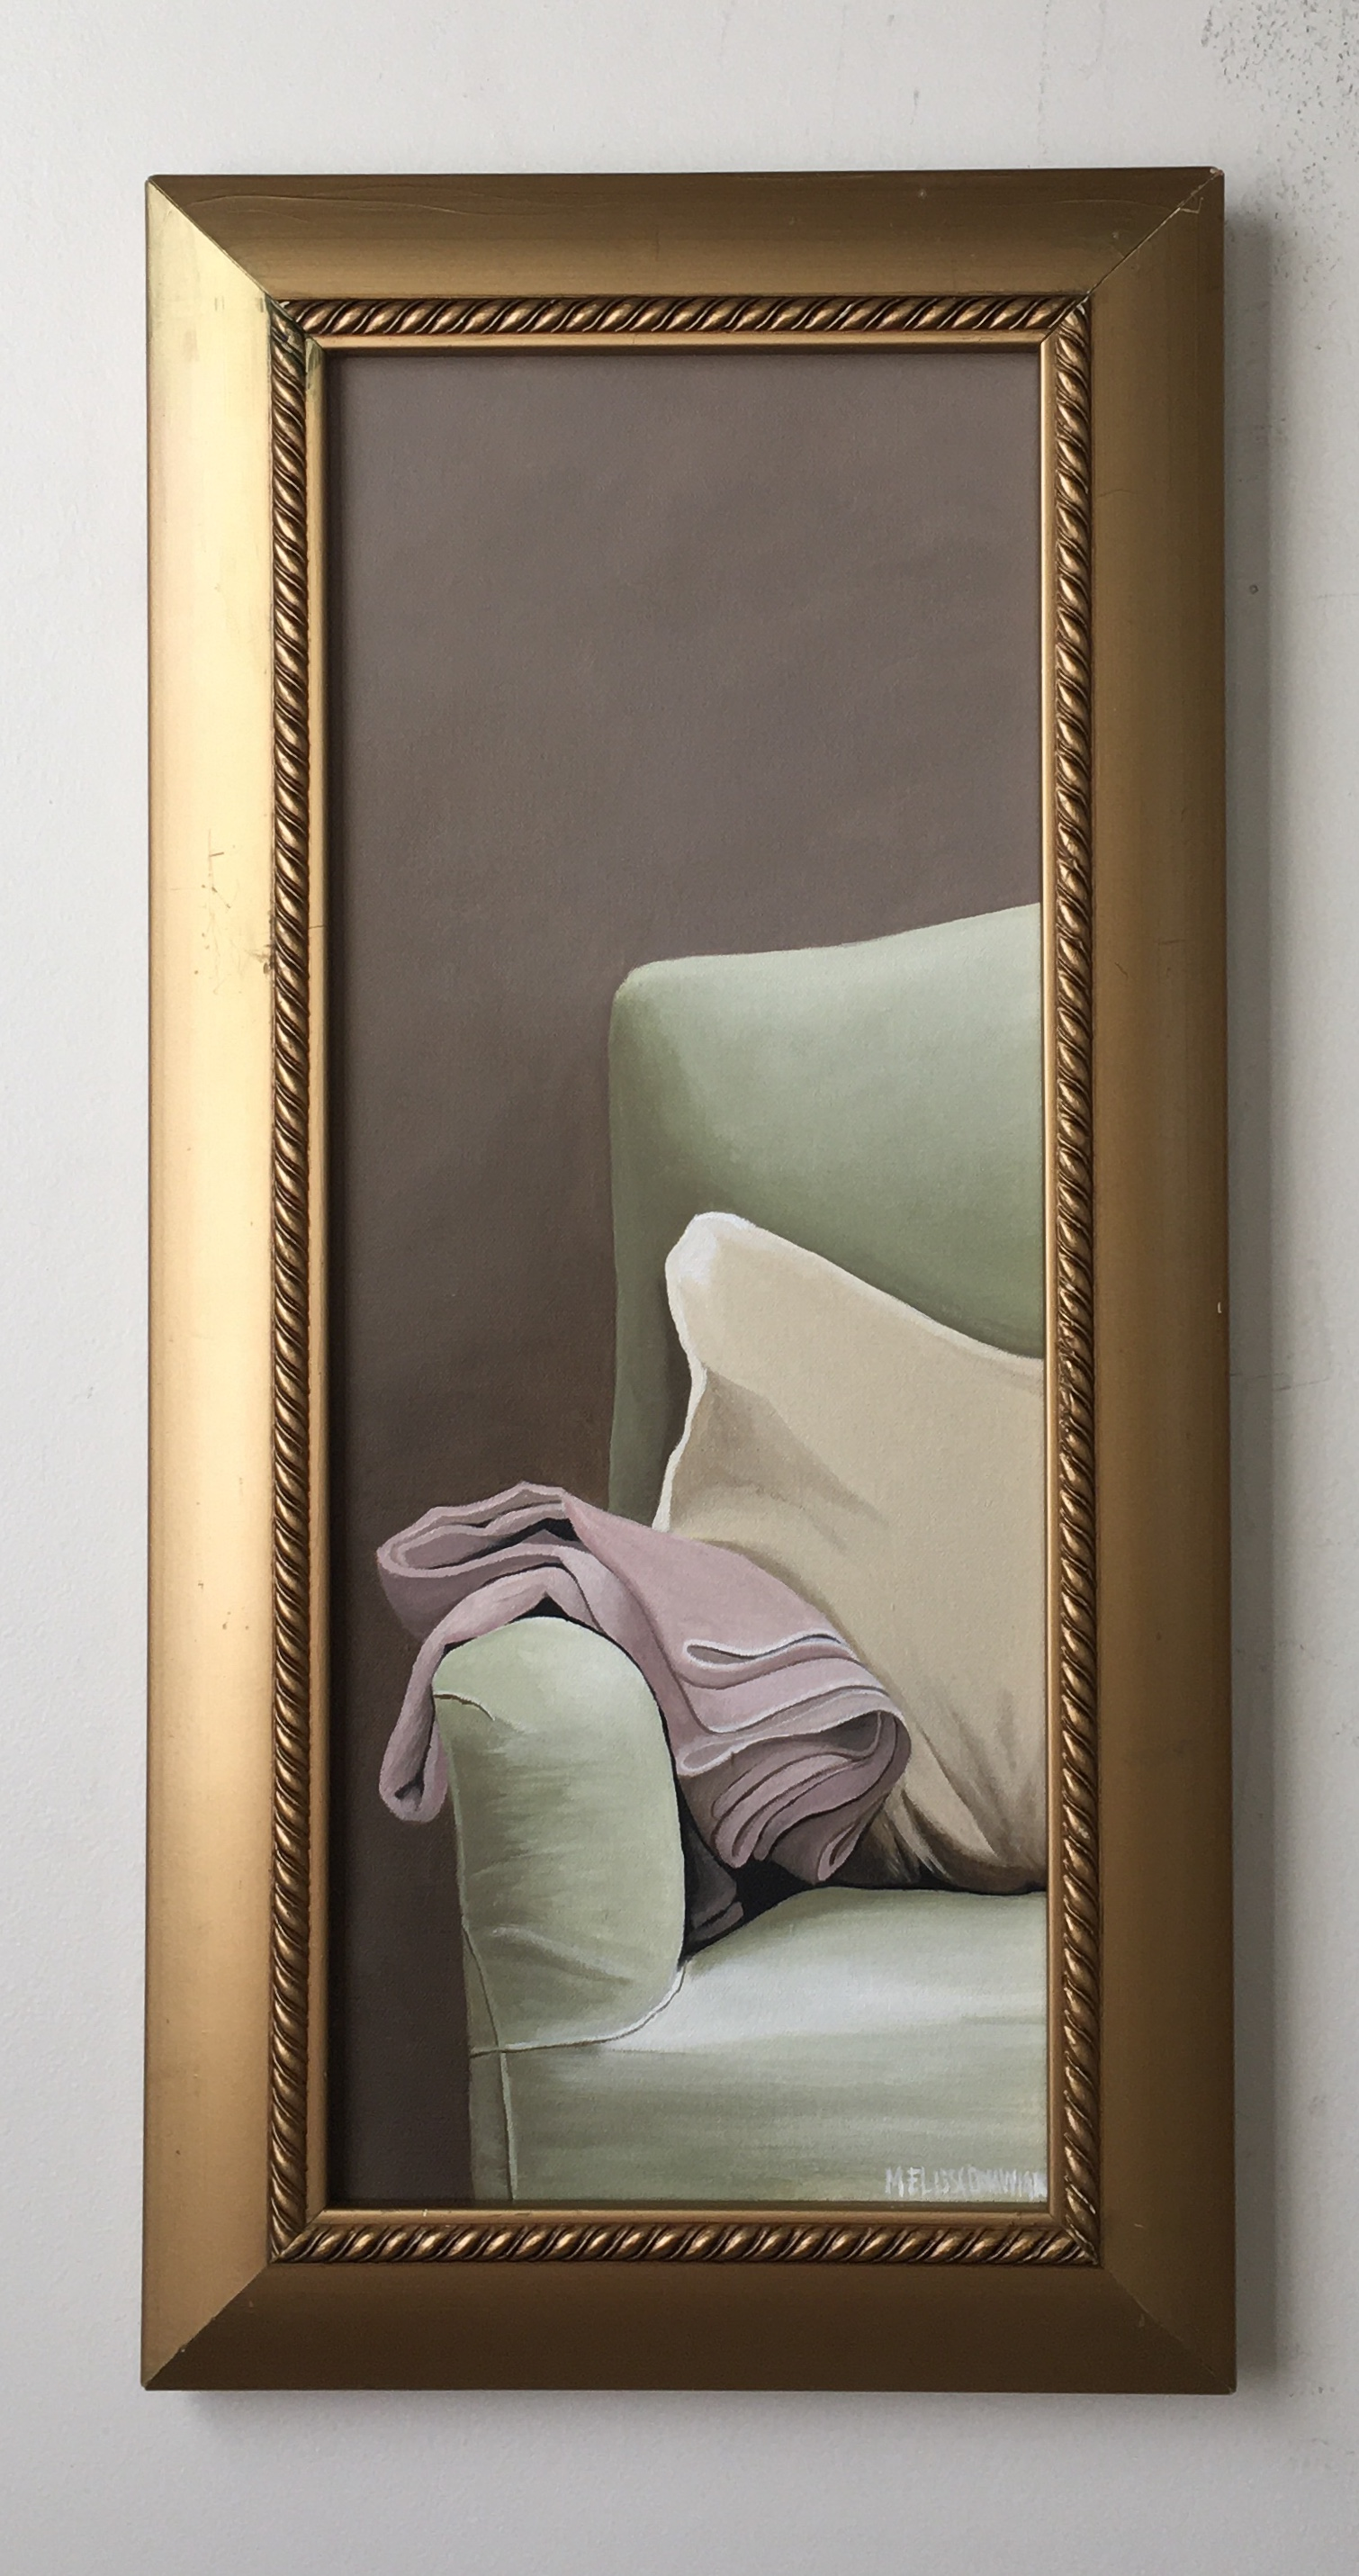 Chair with Pillow and Blanket